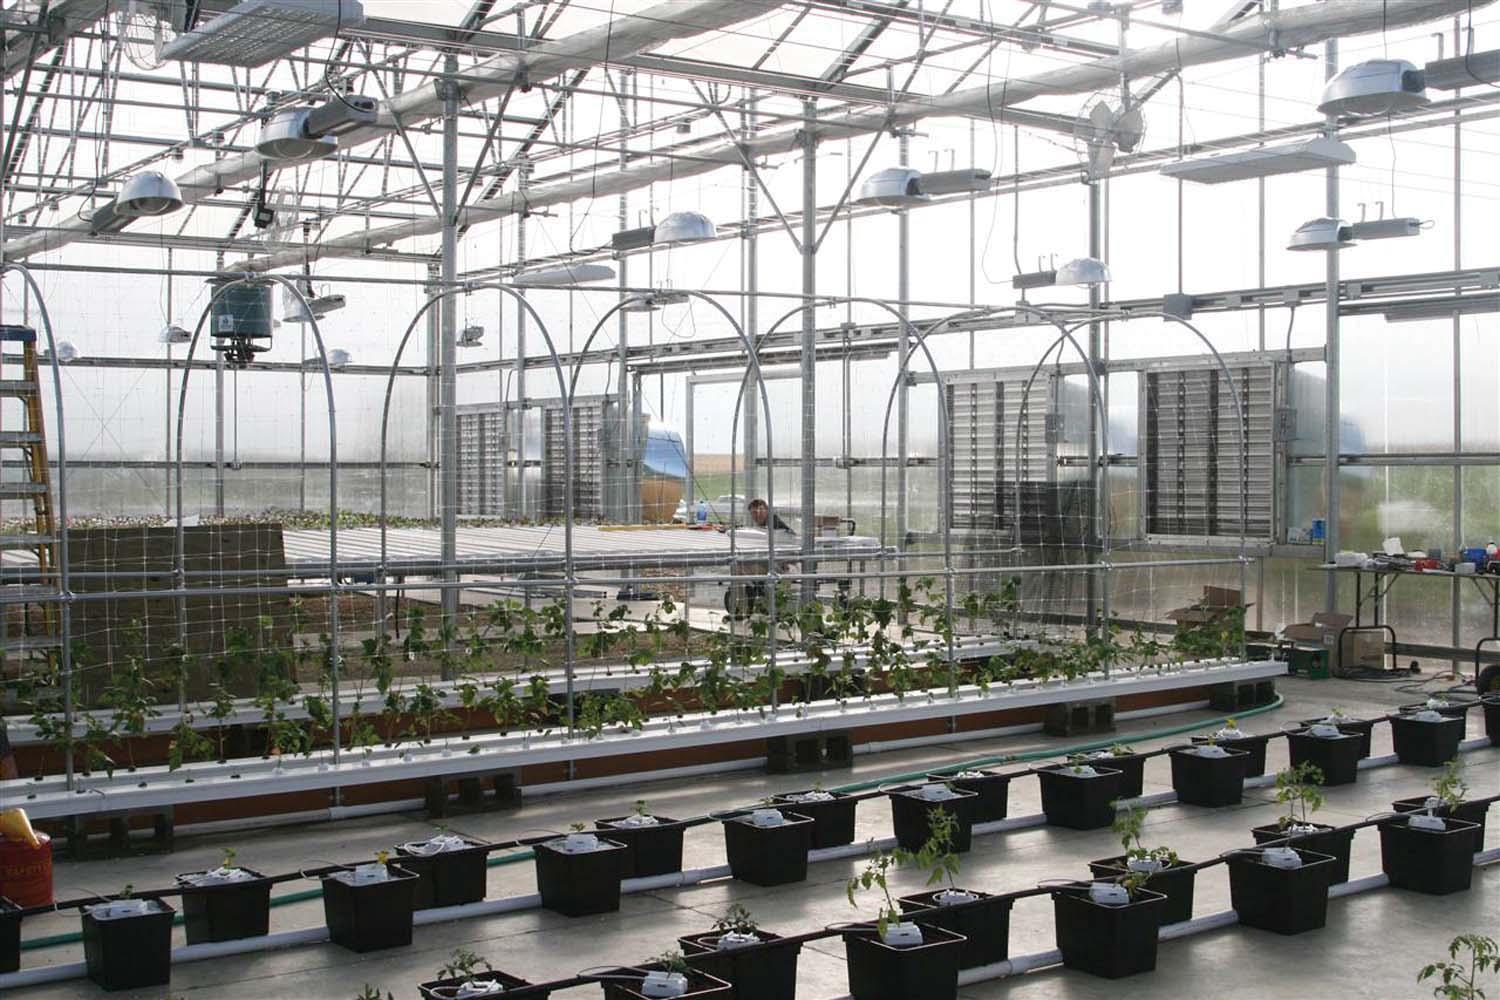 Hydroponic range in greenhouse at Dyersville, IA campus.